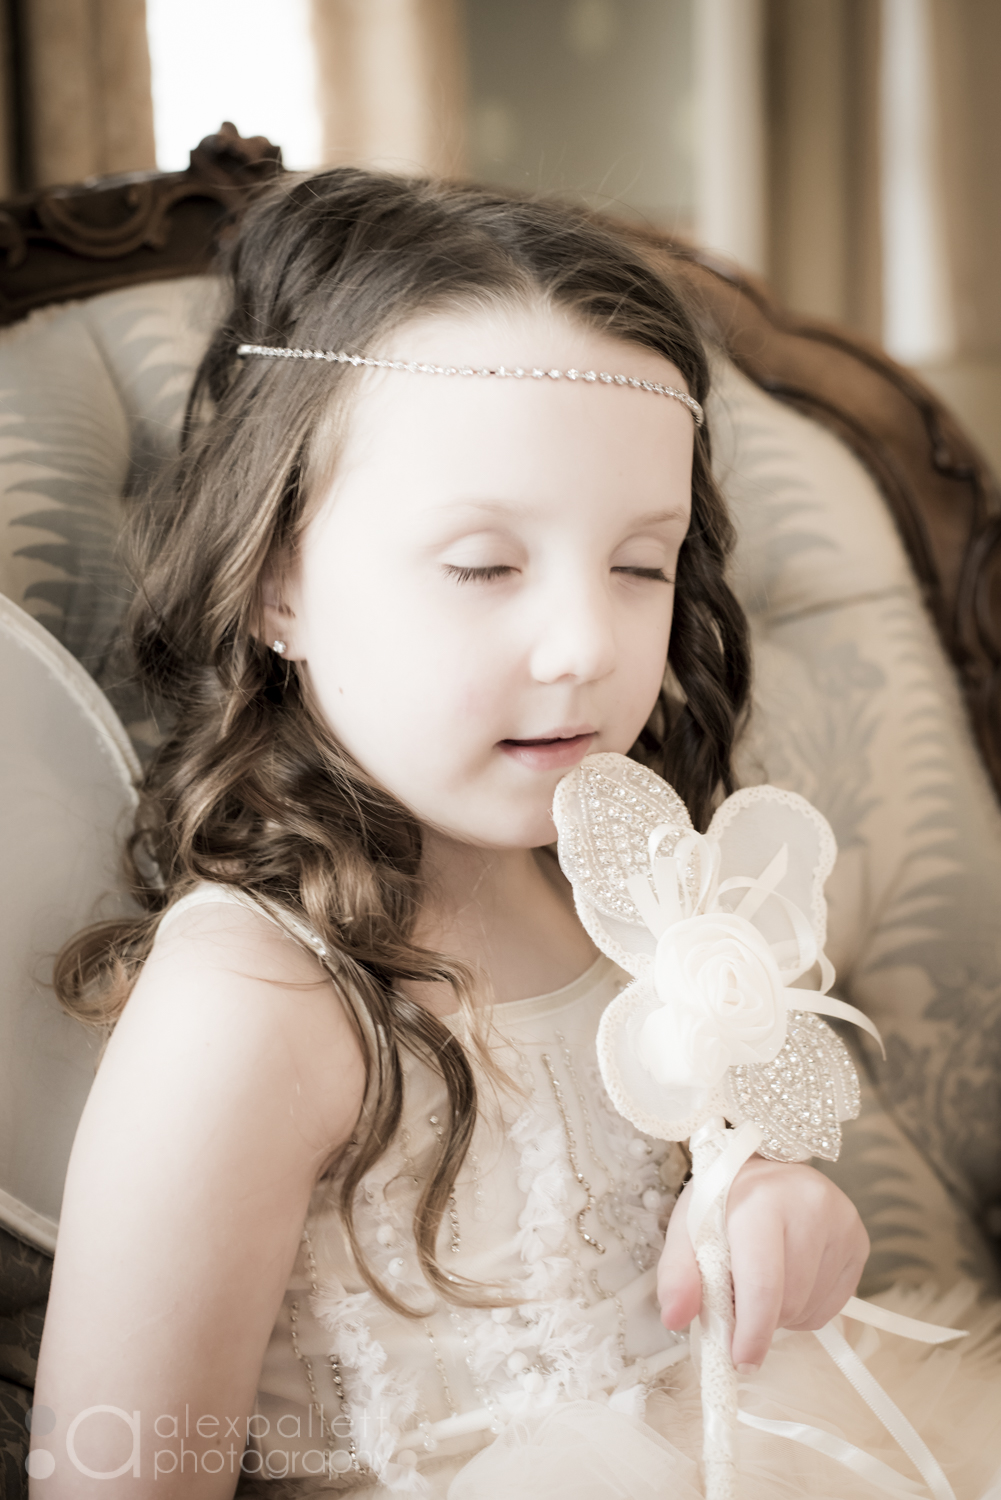 'Make a Wish' by children's photographer Alex Pallett